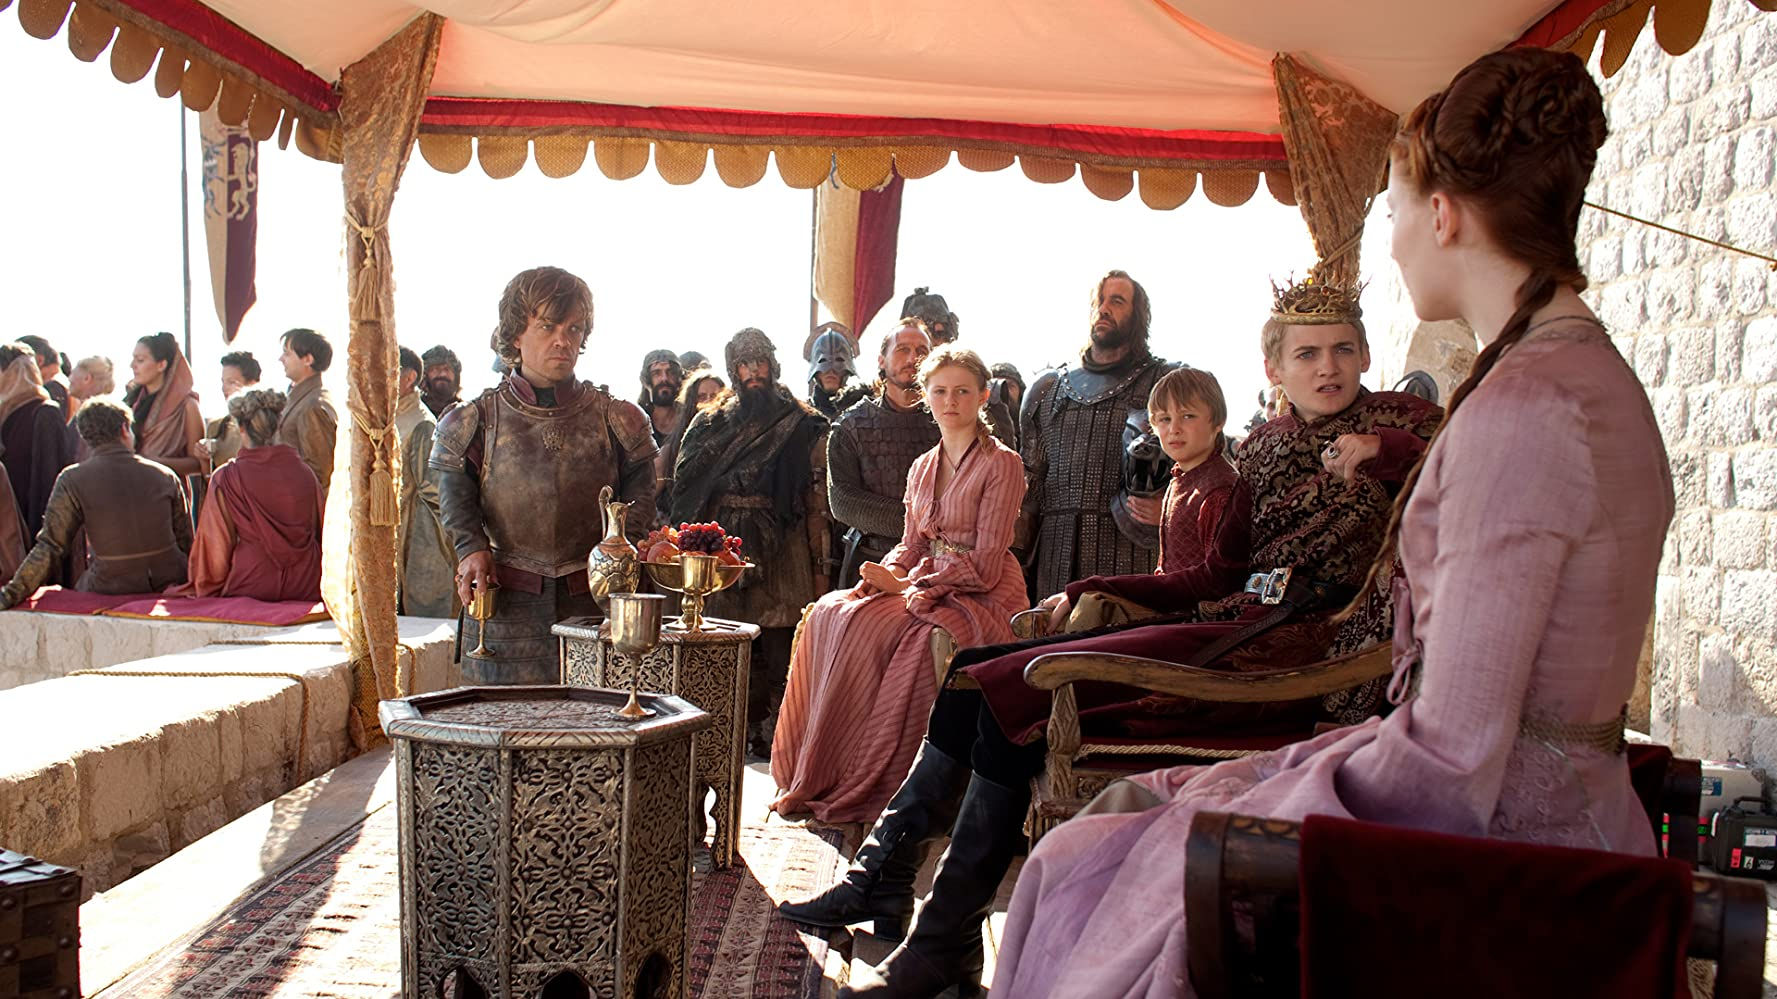 Peter Dinklage, Jerome Flynn, Jack Gleeson, Rory McCann, Sophie Turner, Aimee Richardson, and Callum Wharry in Game of Thrones (2011)